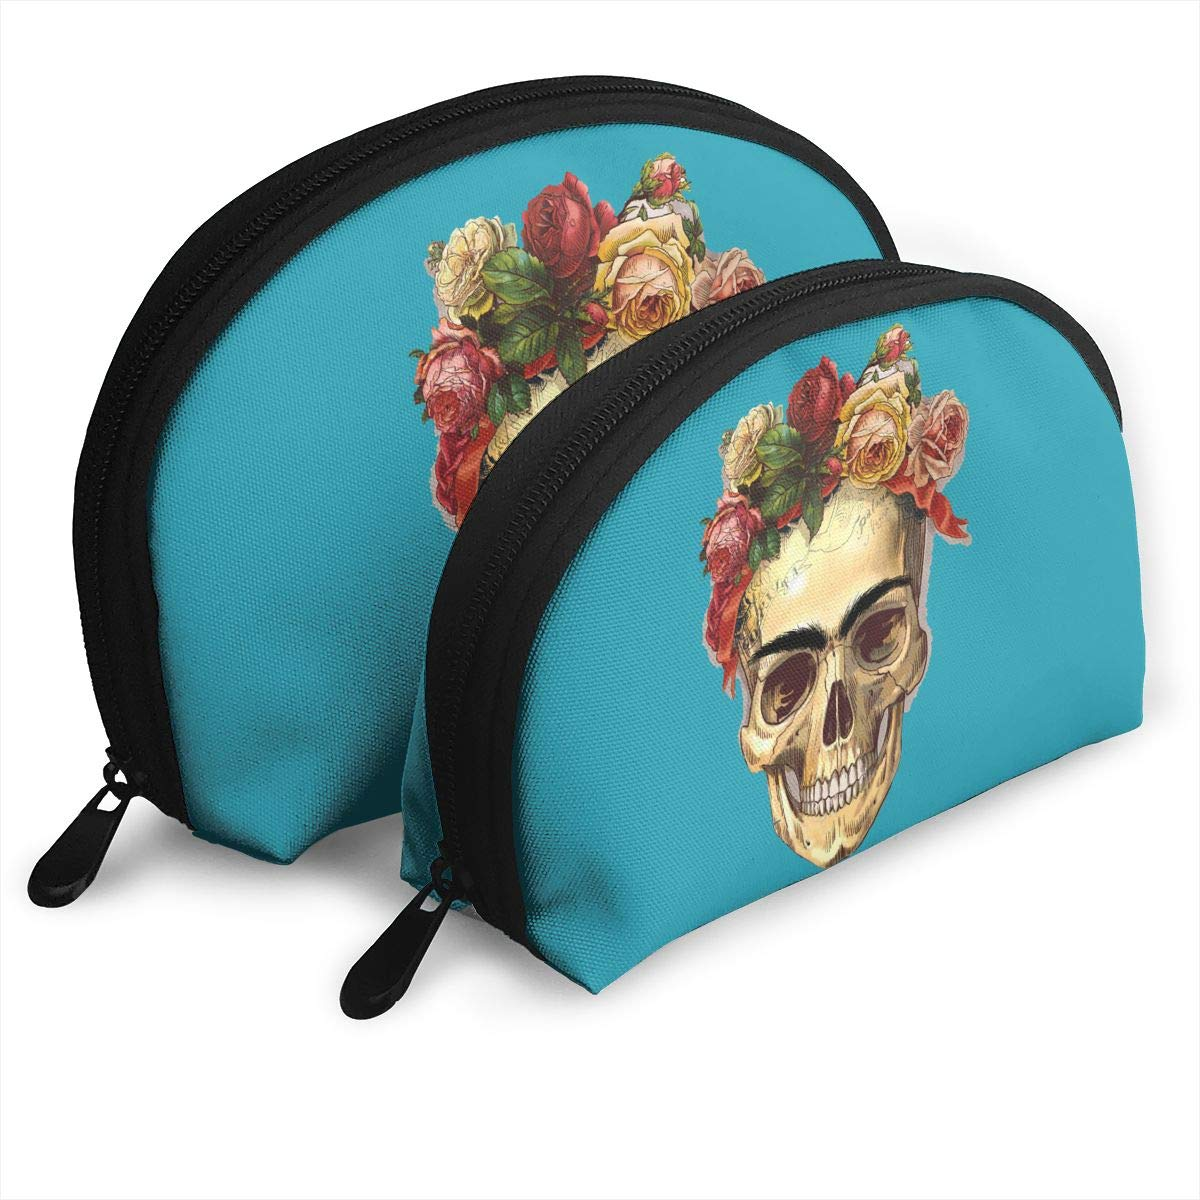 MFILM FVAFN Skulls of Famous Artists Makeup Storage Bag, Portable Small Shell Handy Organizer Pouch for Women